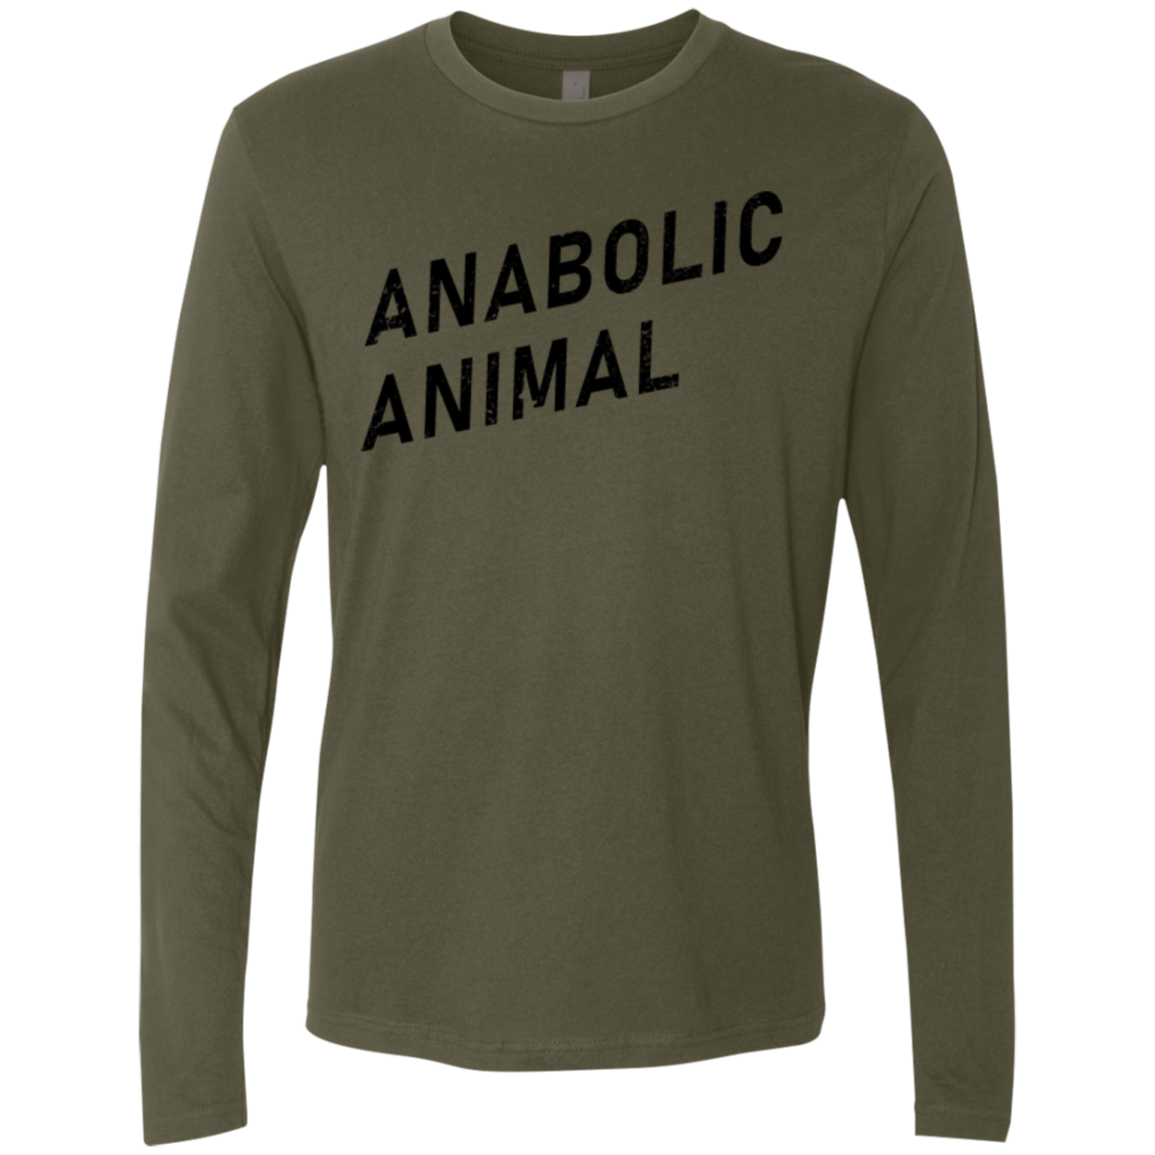 Anabolic Animal Men's Long Sleeve Tee